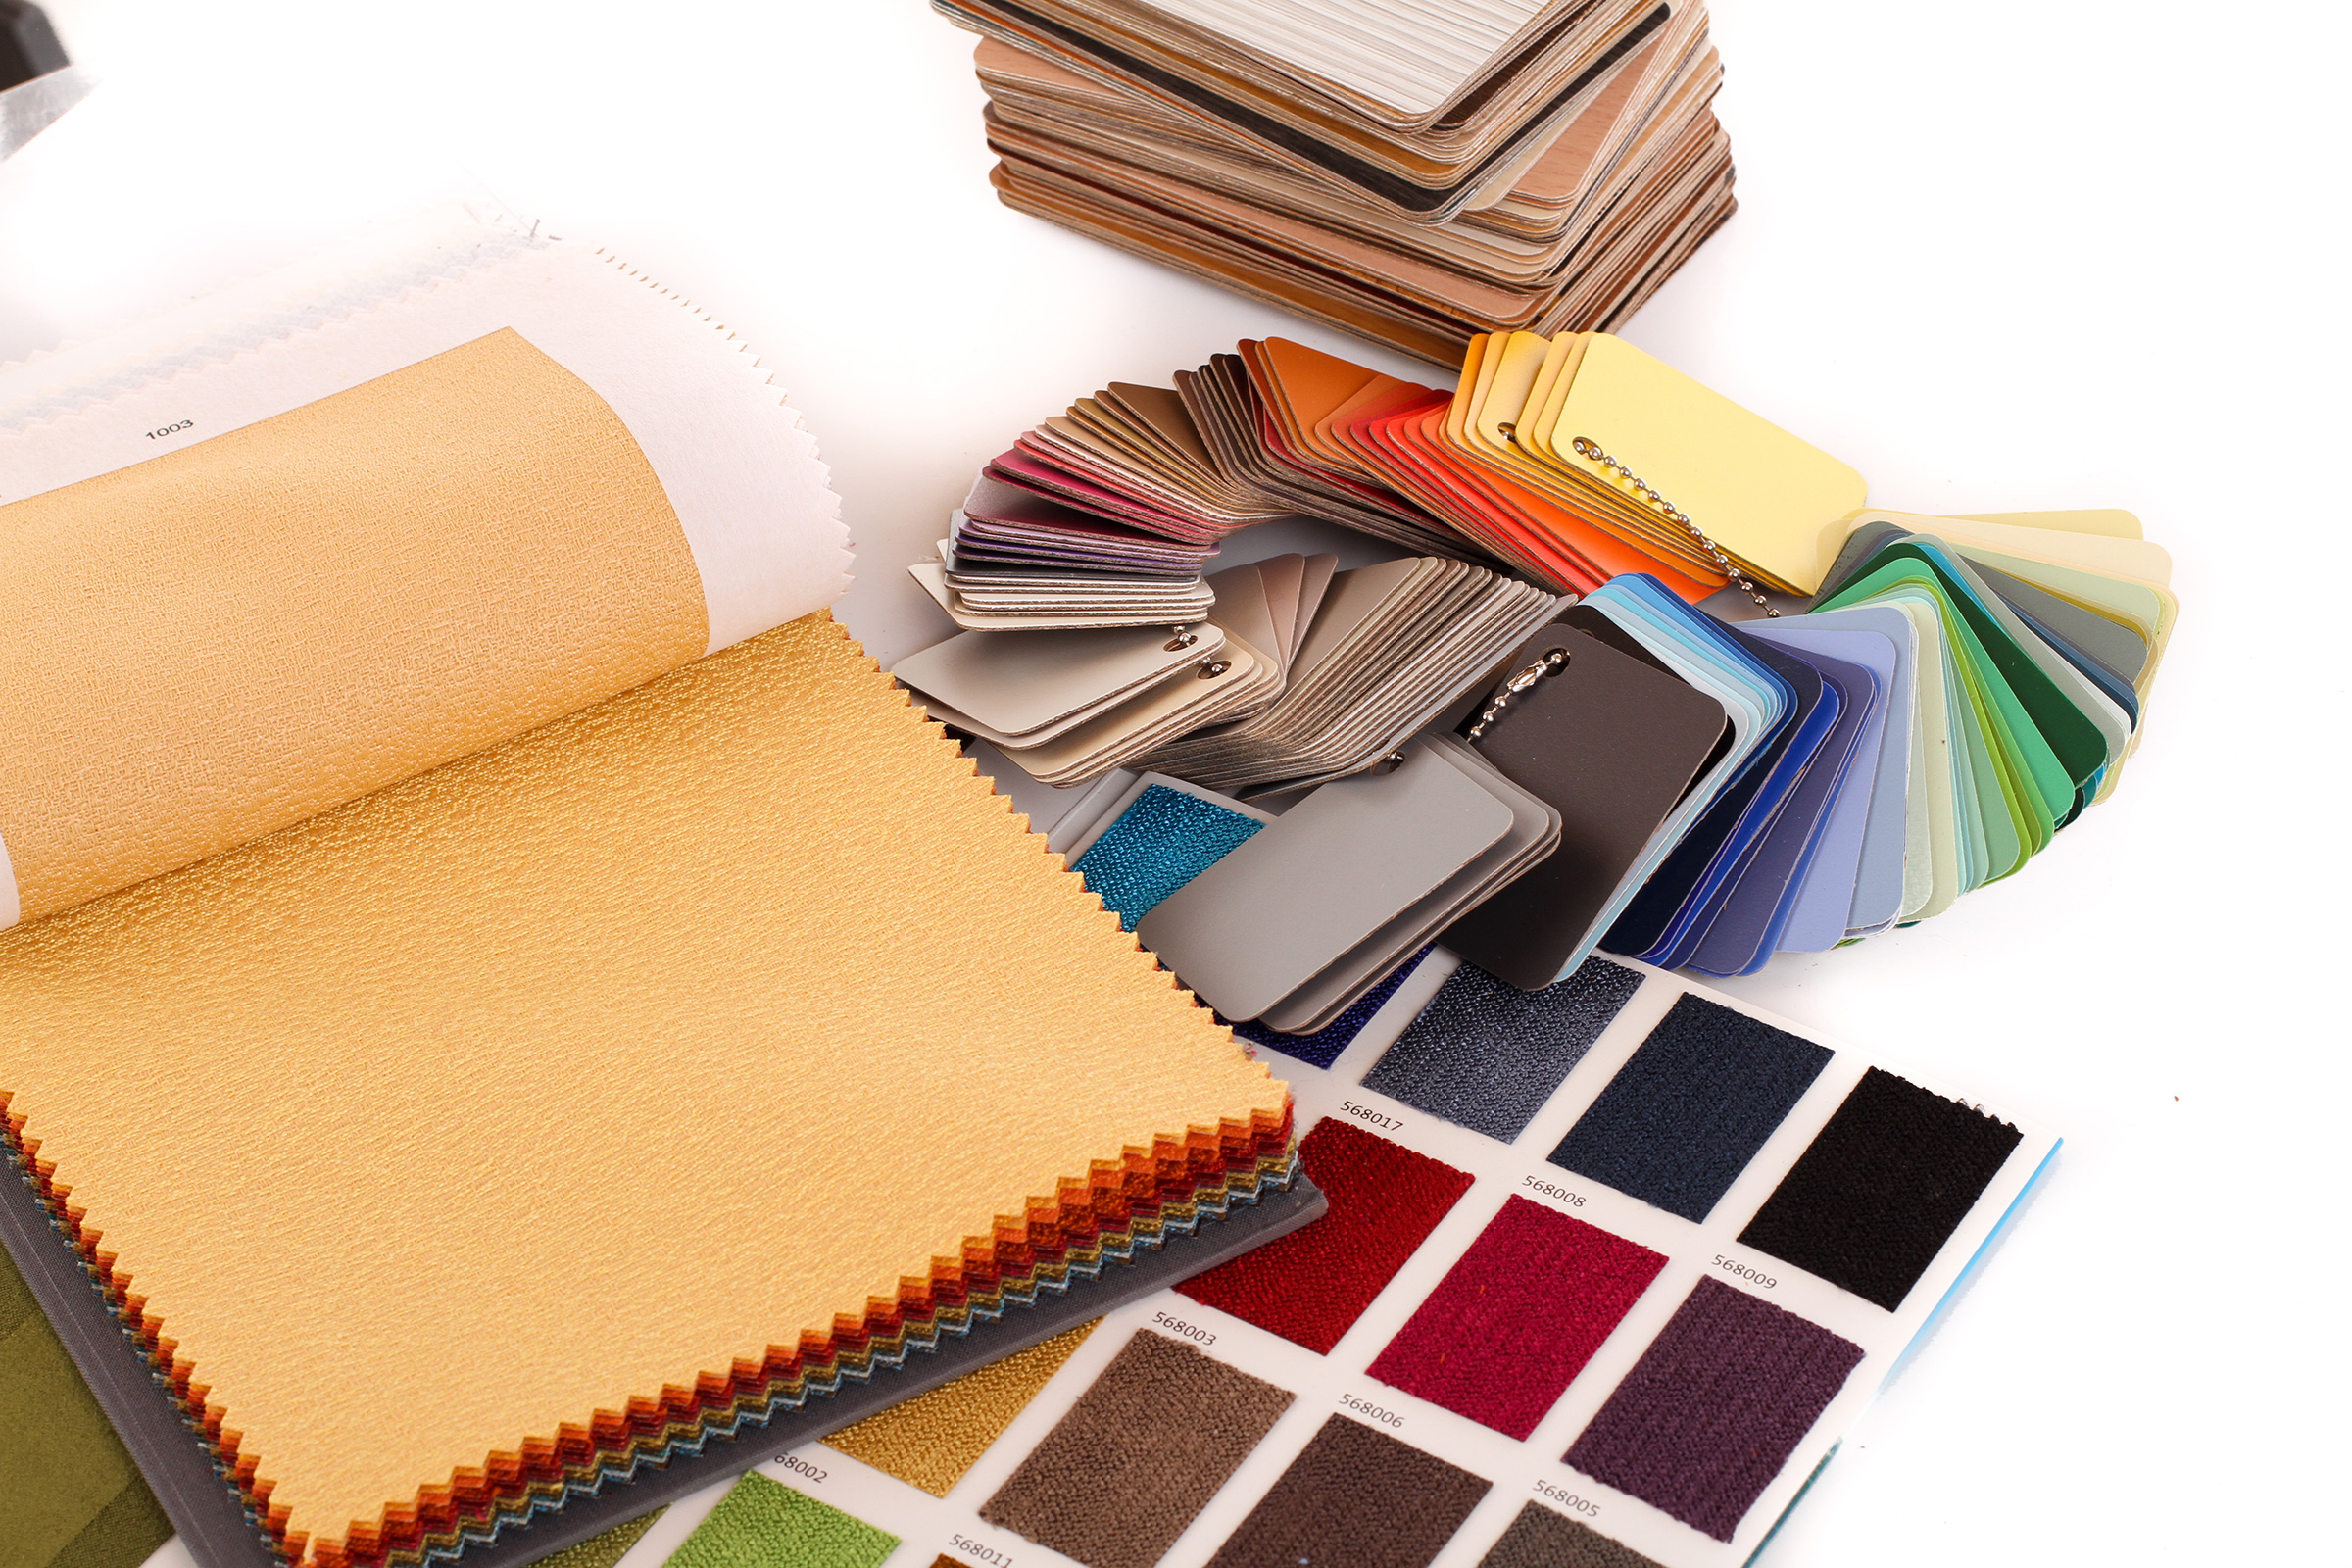 F3 can customize furniture fabric and materials